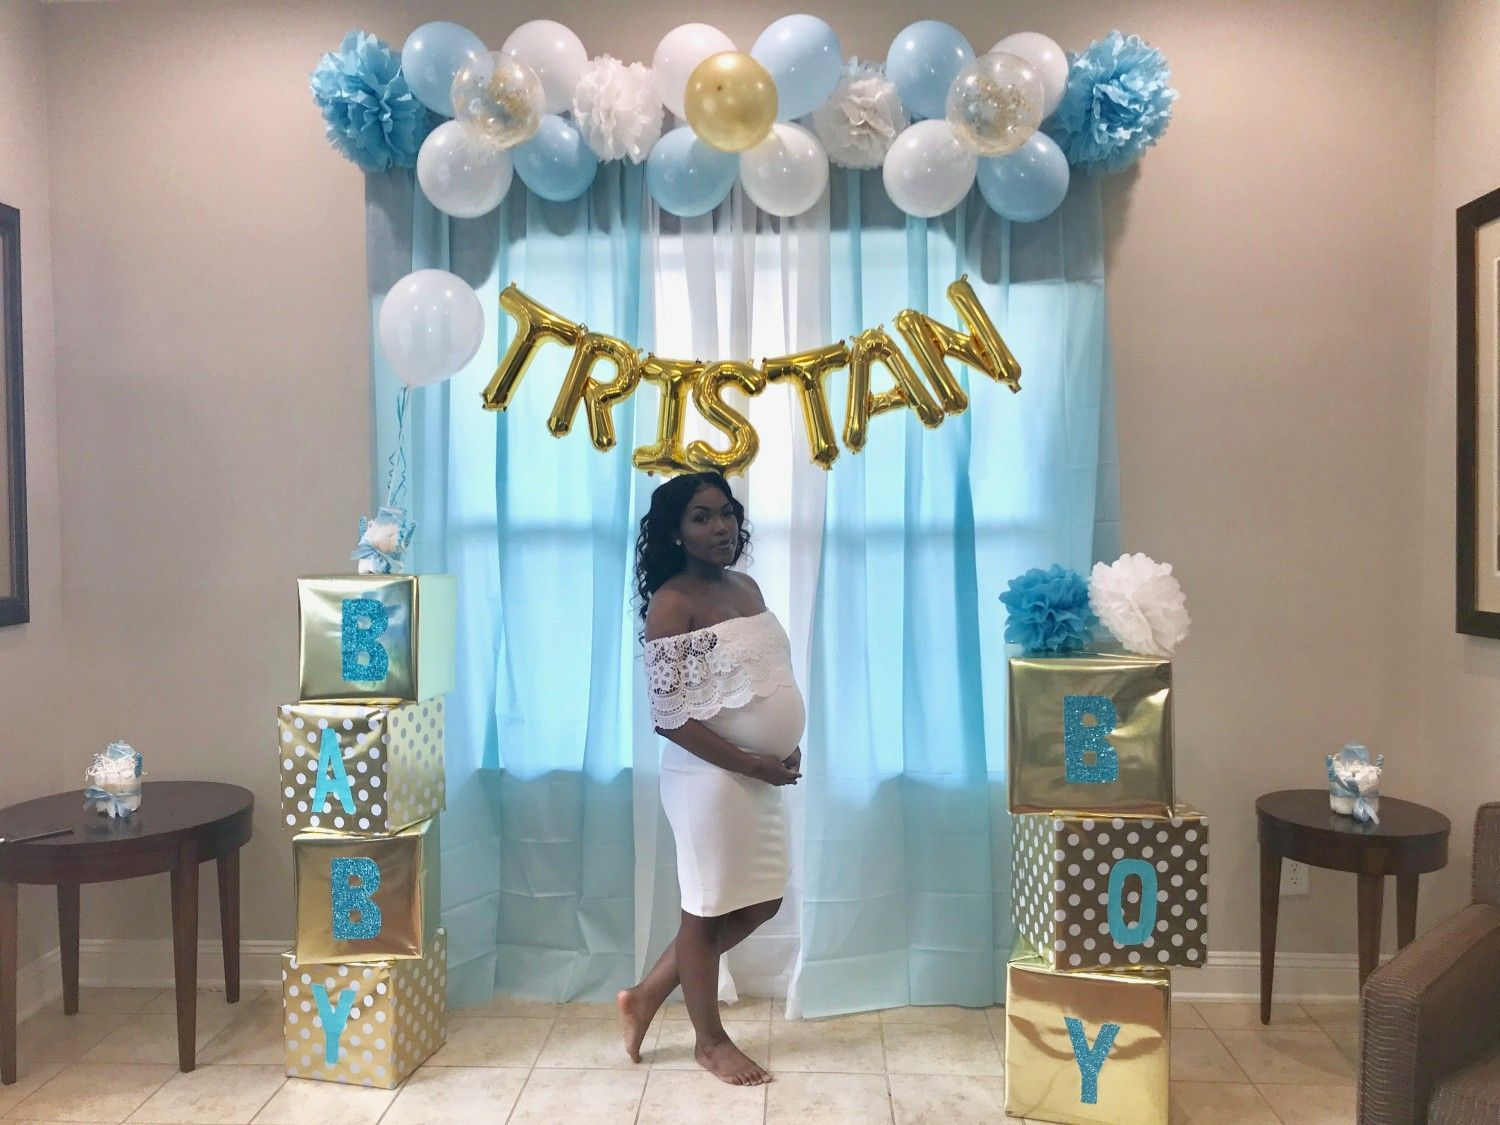 80 Reference Of Elephant Baby Shower Backdrop With Balloons En 2020 Telon De Fondo De Baby Shower Fotos Baby Shower Boy Baby Shower Ideas